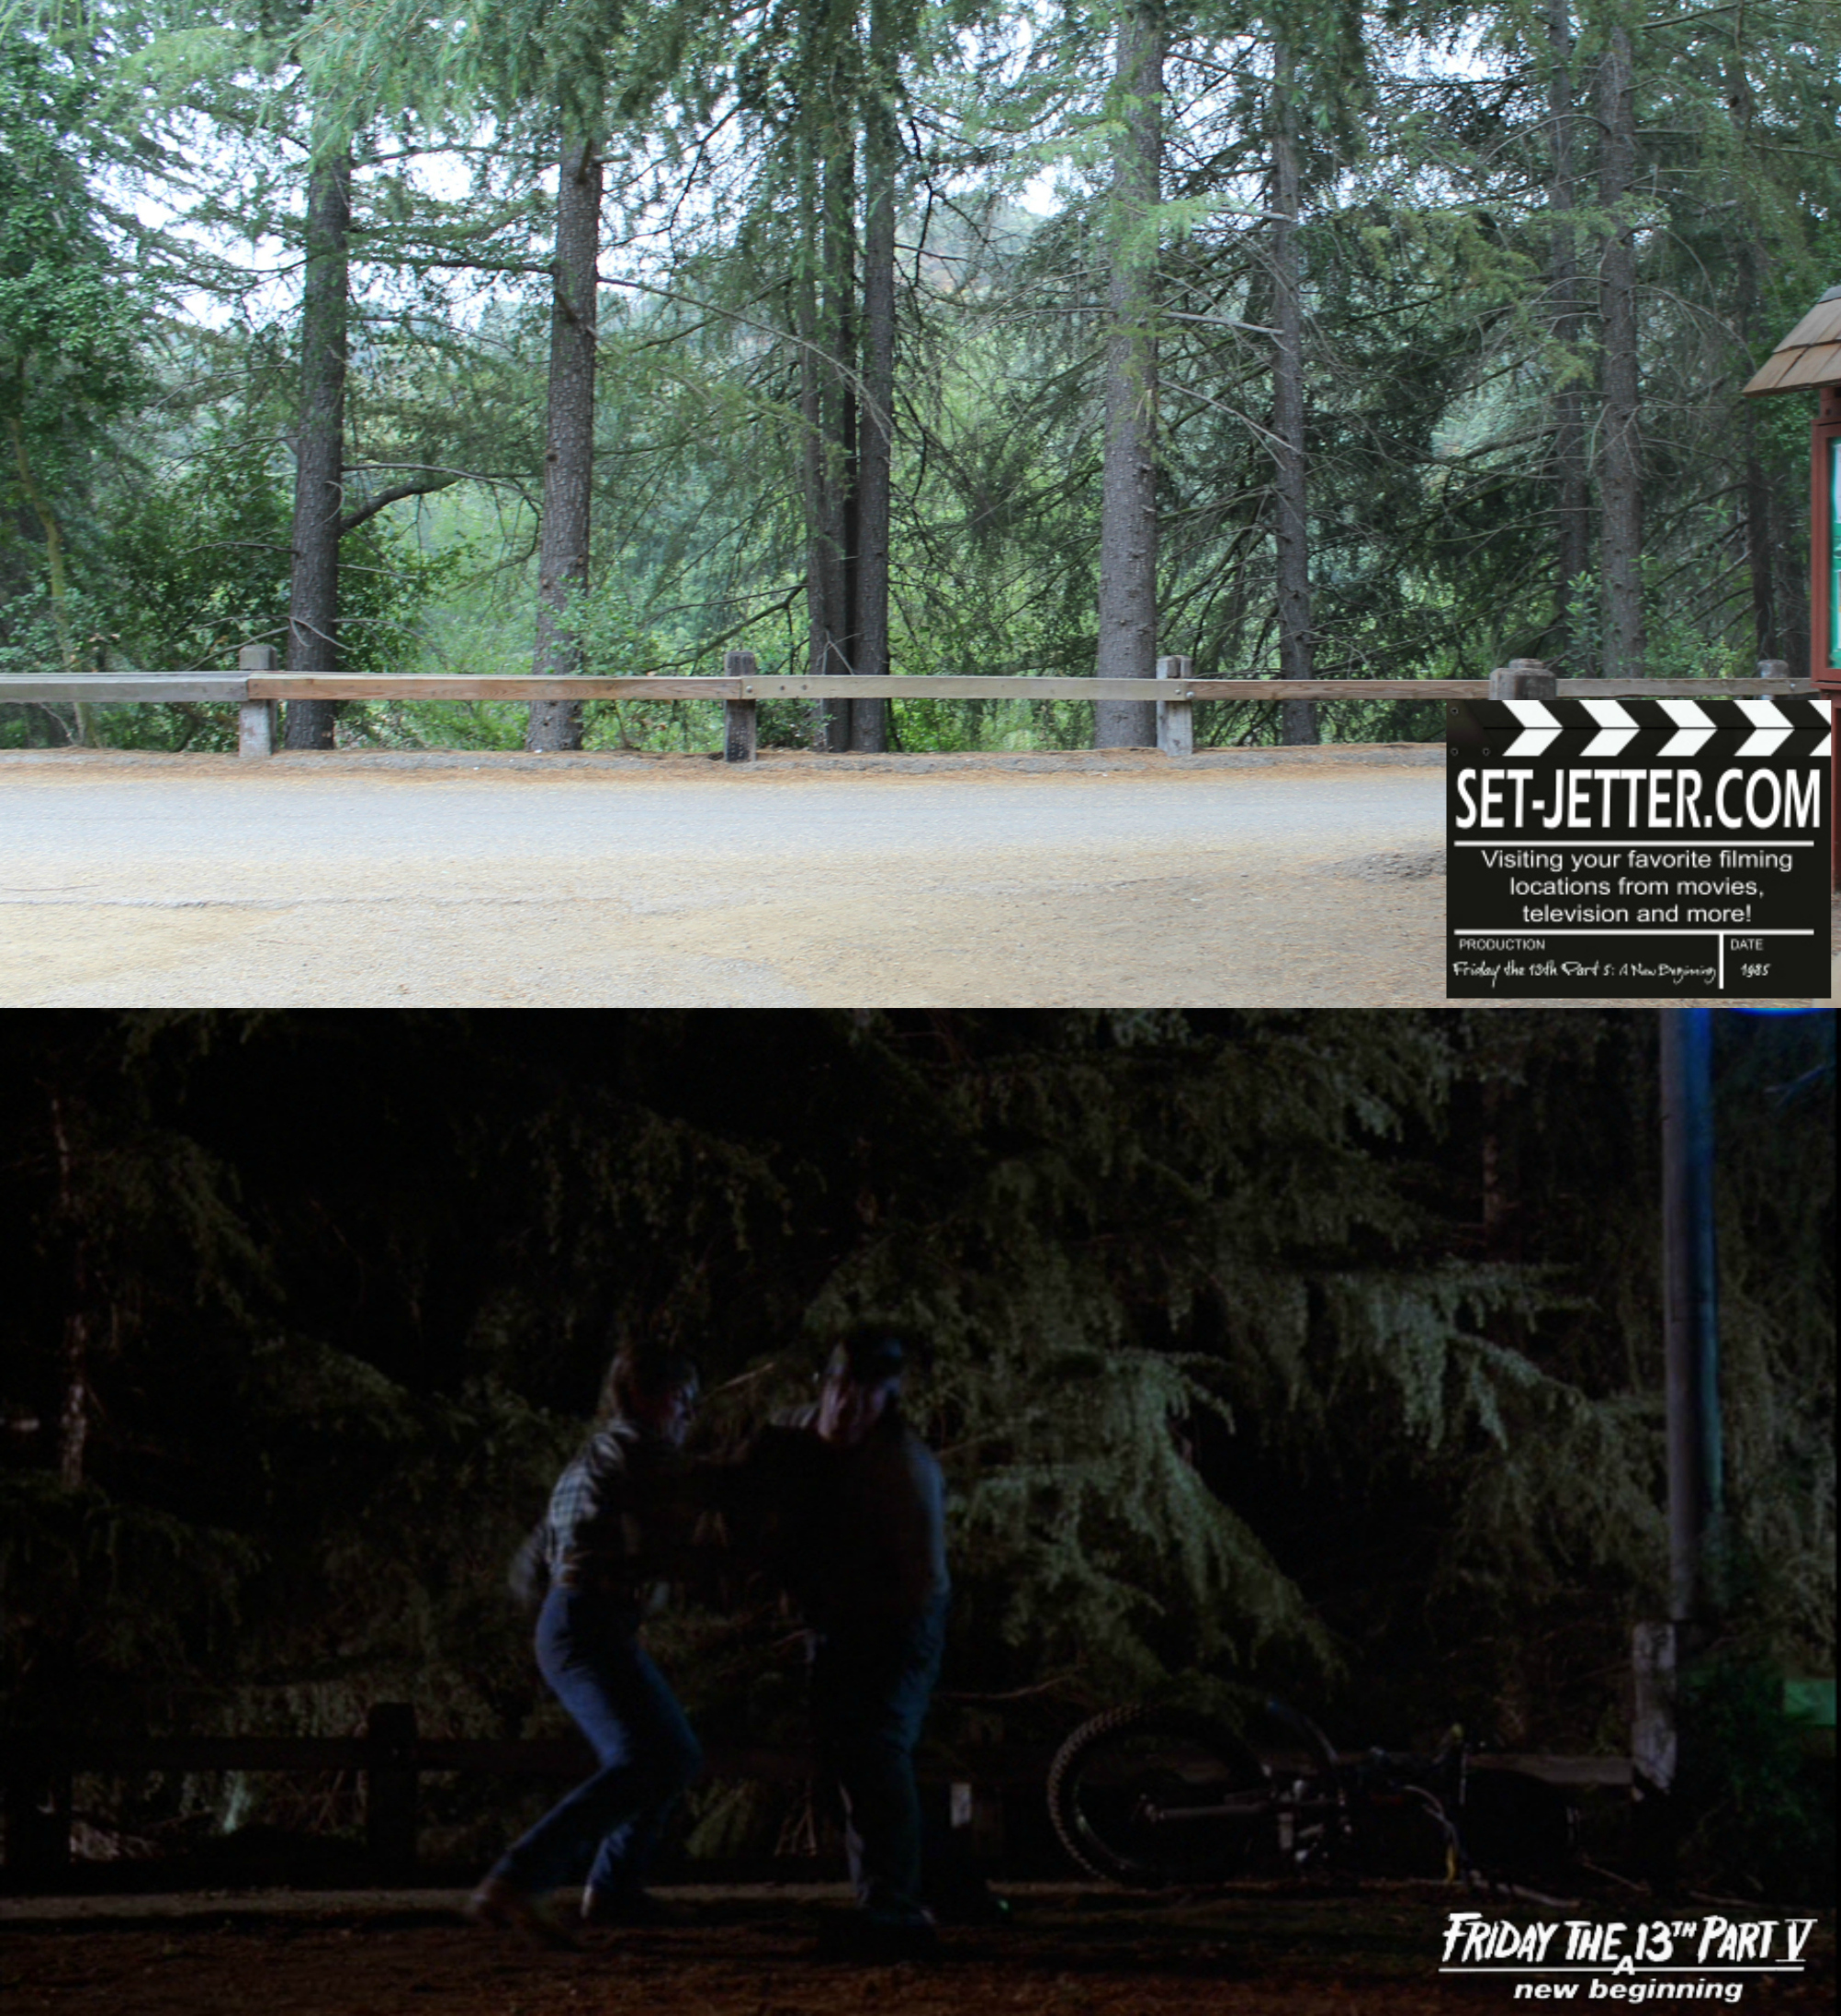 Friday the 13th Part V comparison 43.jpg